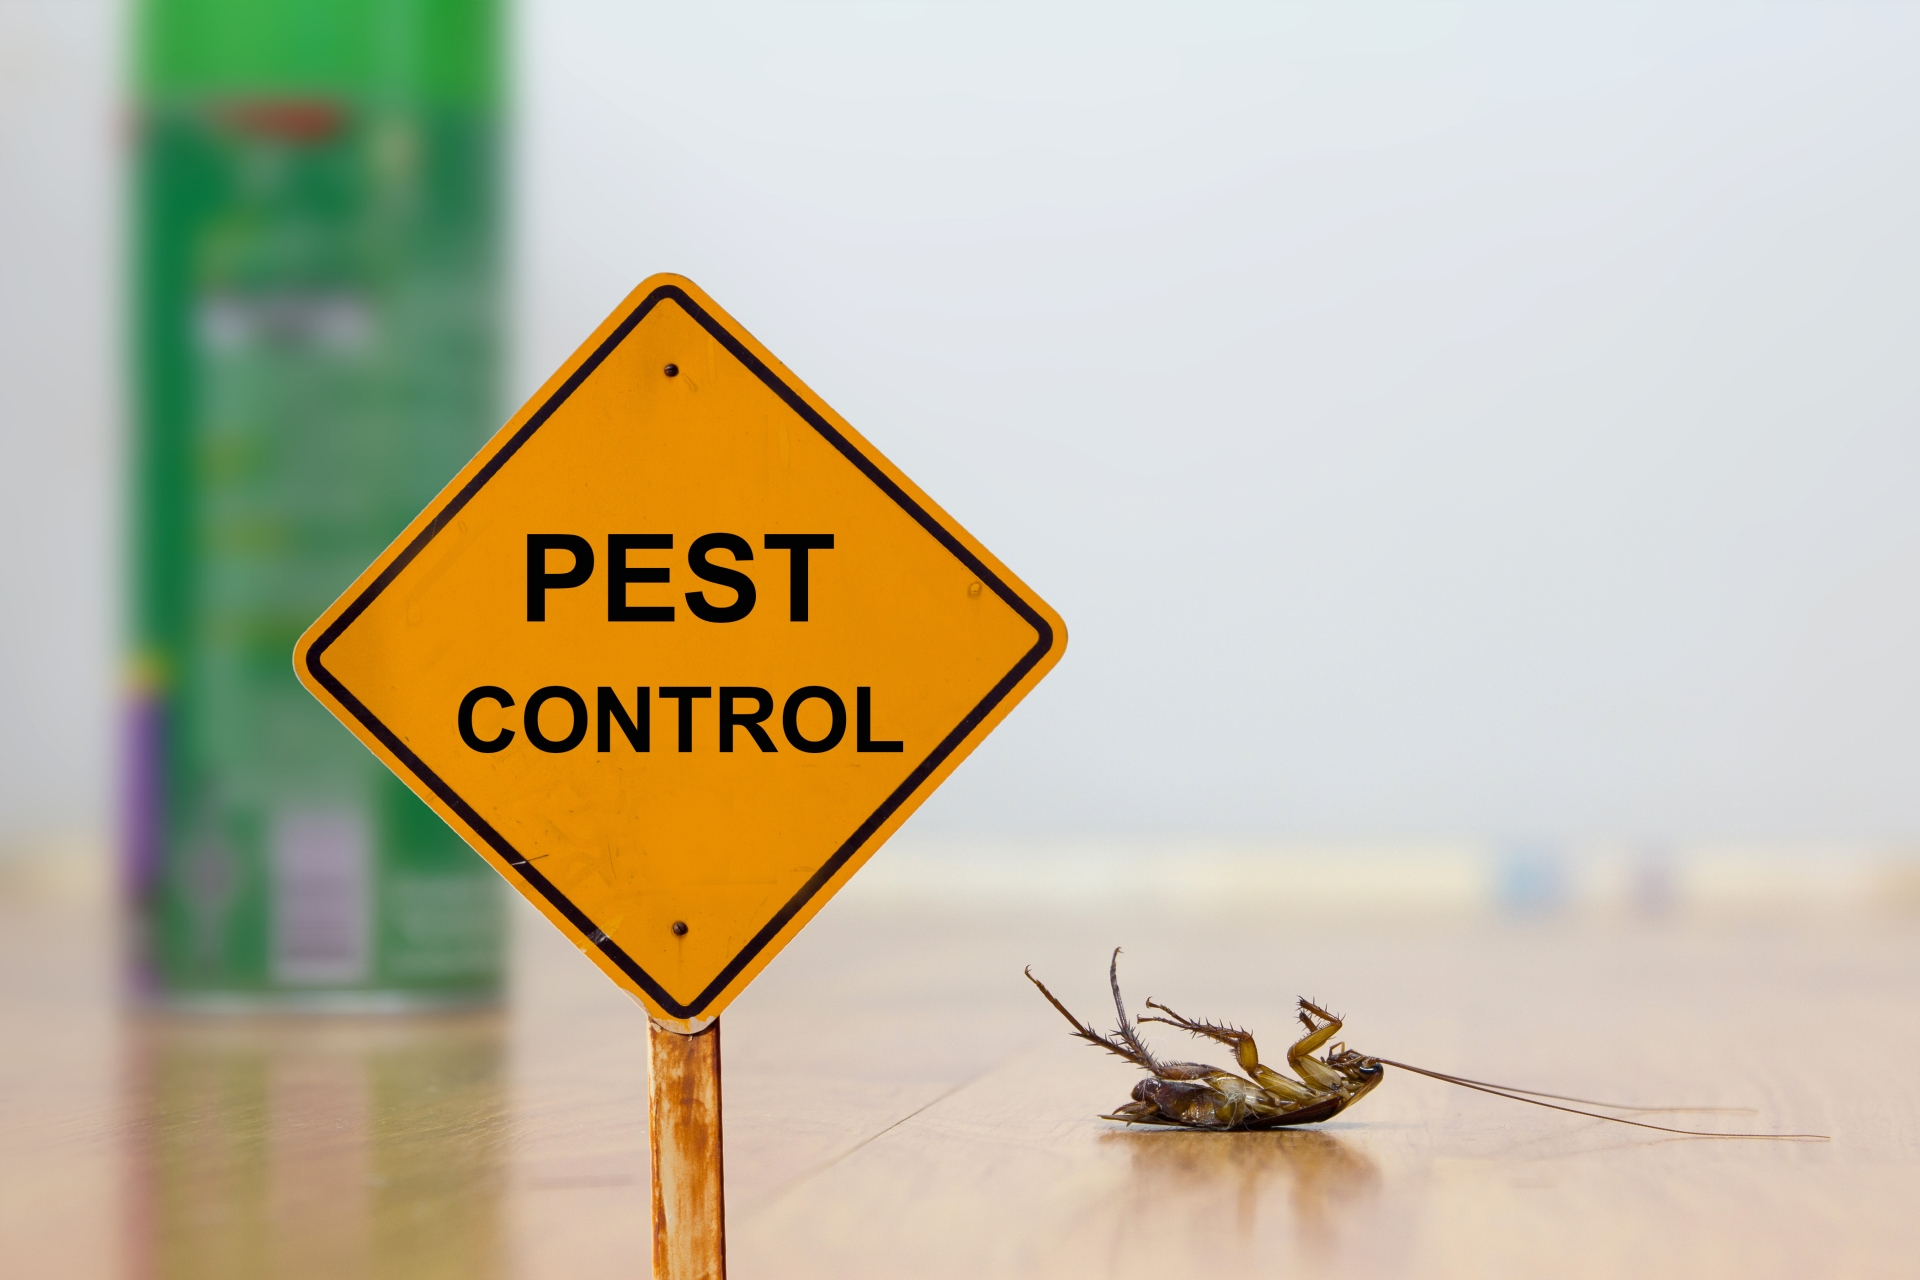 24 Hour Pest Control, Pest Control in Holloway, N7 . Call Now 020 8166 9746